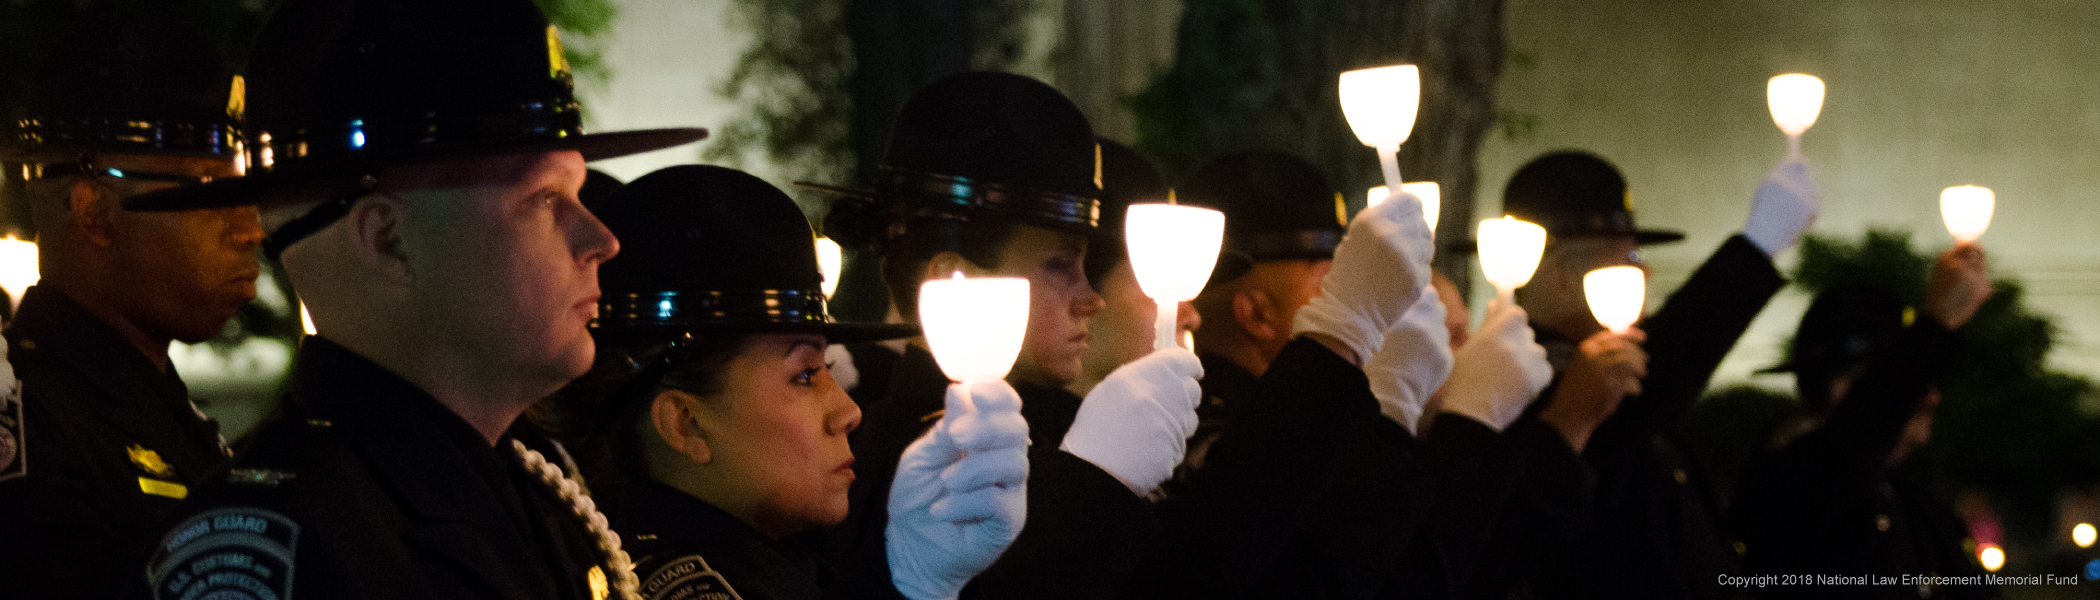 Candle light vigil - Copyright 2018 National Law Enforcement Memorial Fund